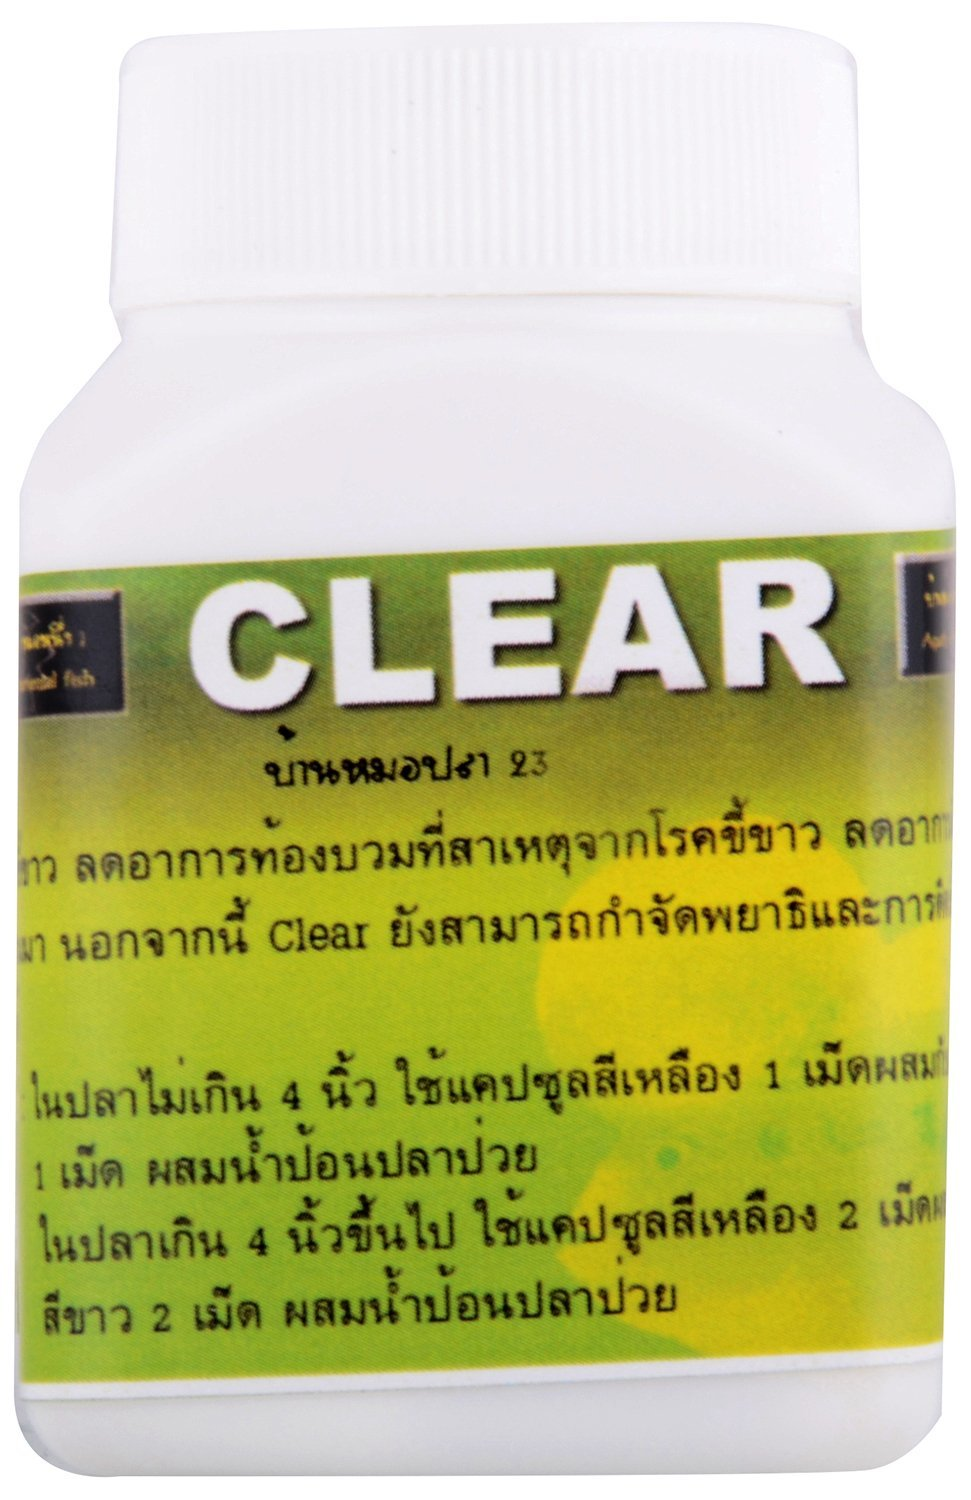 Clear Medicine For FlowerHorn Fish for Treat white pooh and inflammatory bowel by CZ Aqua Products